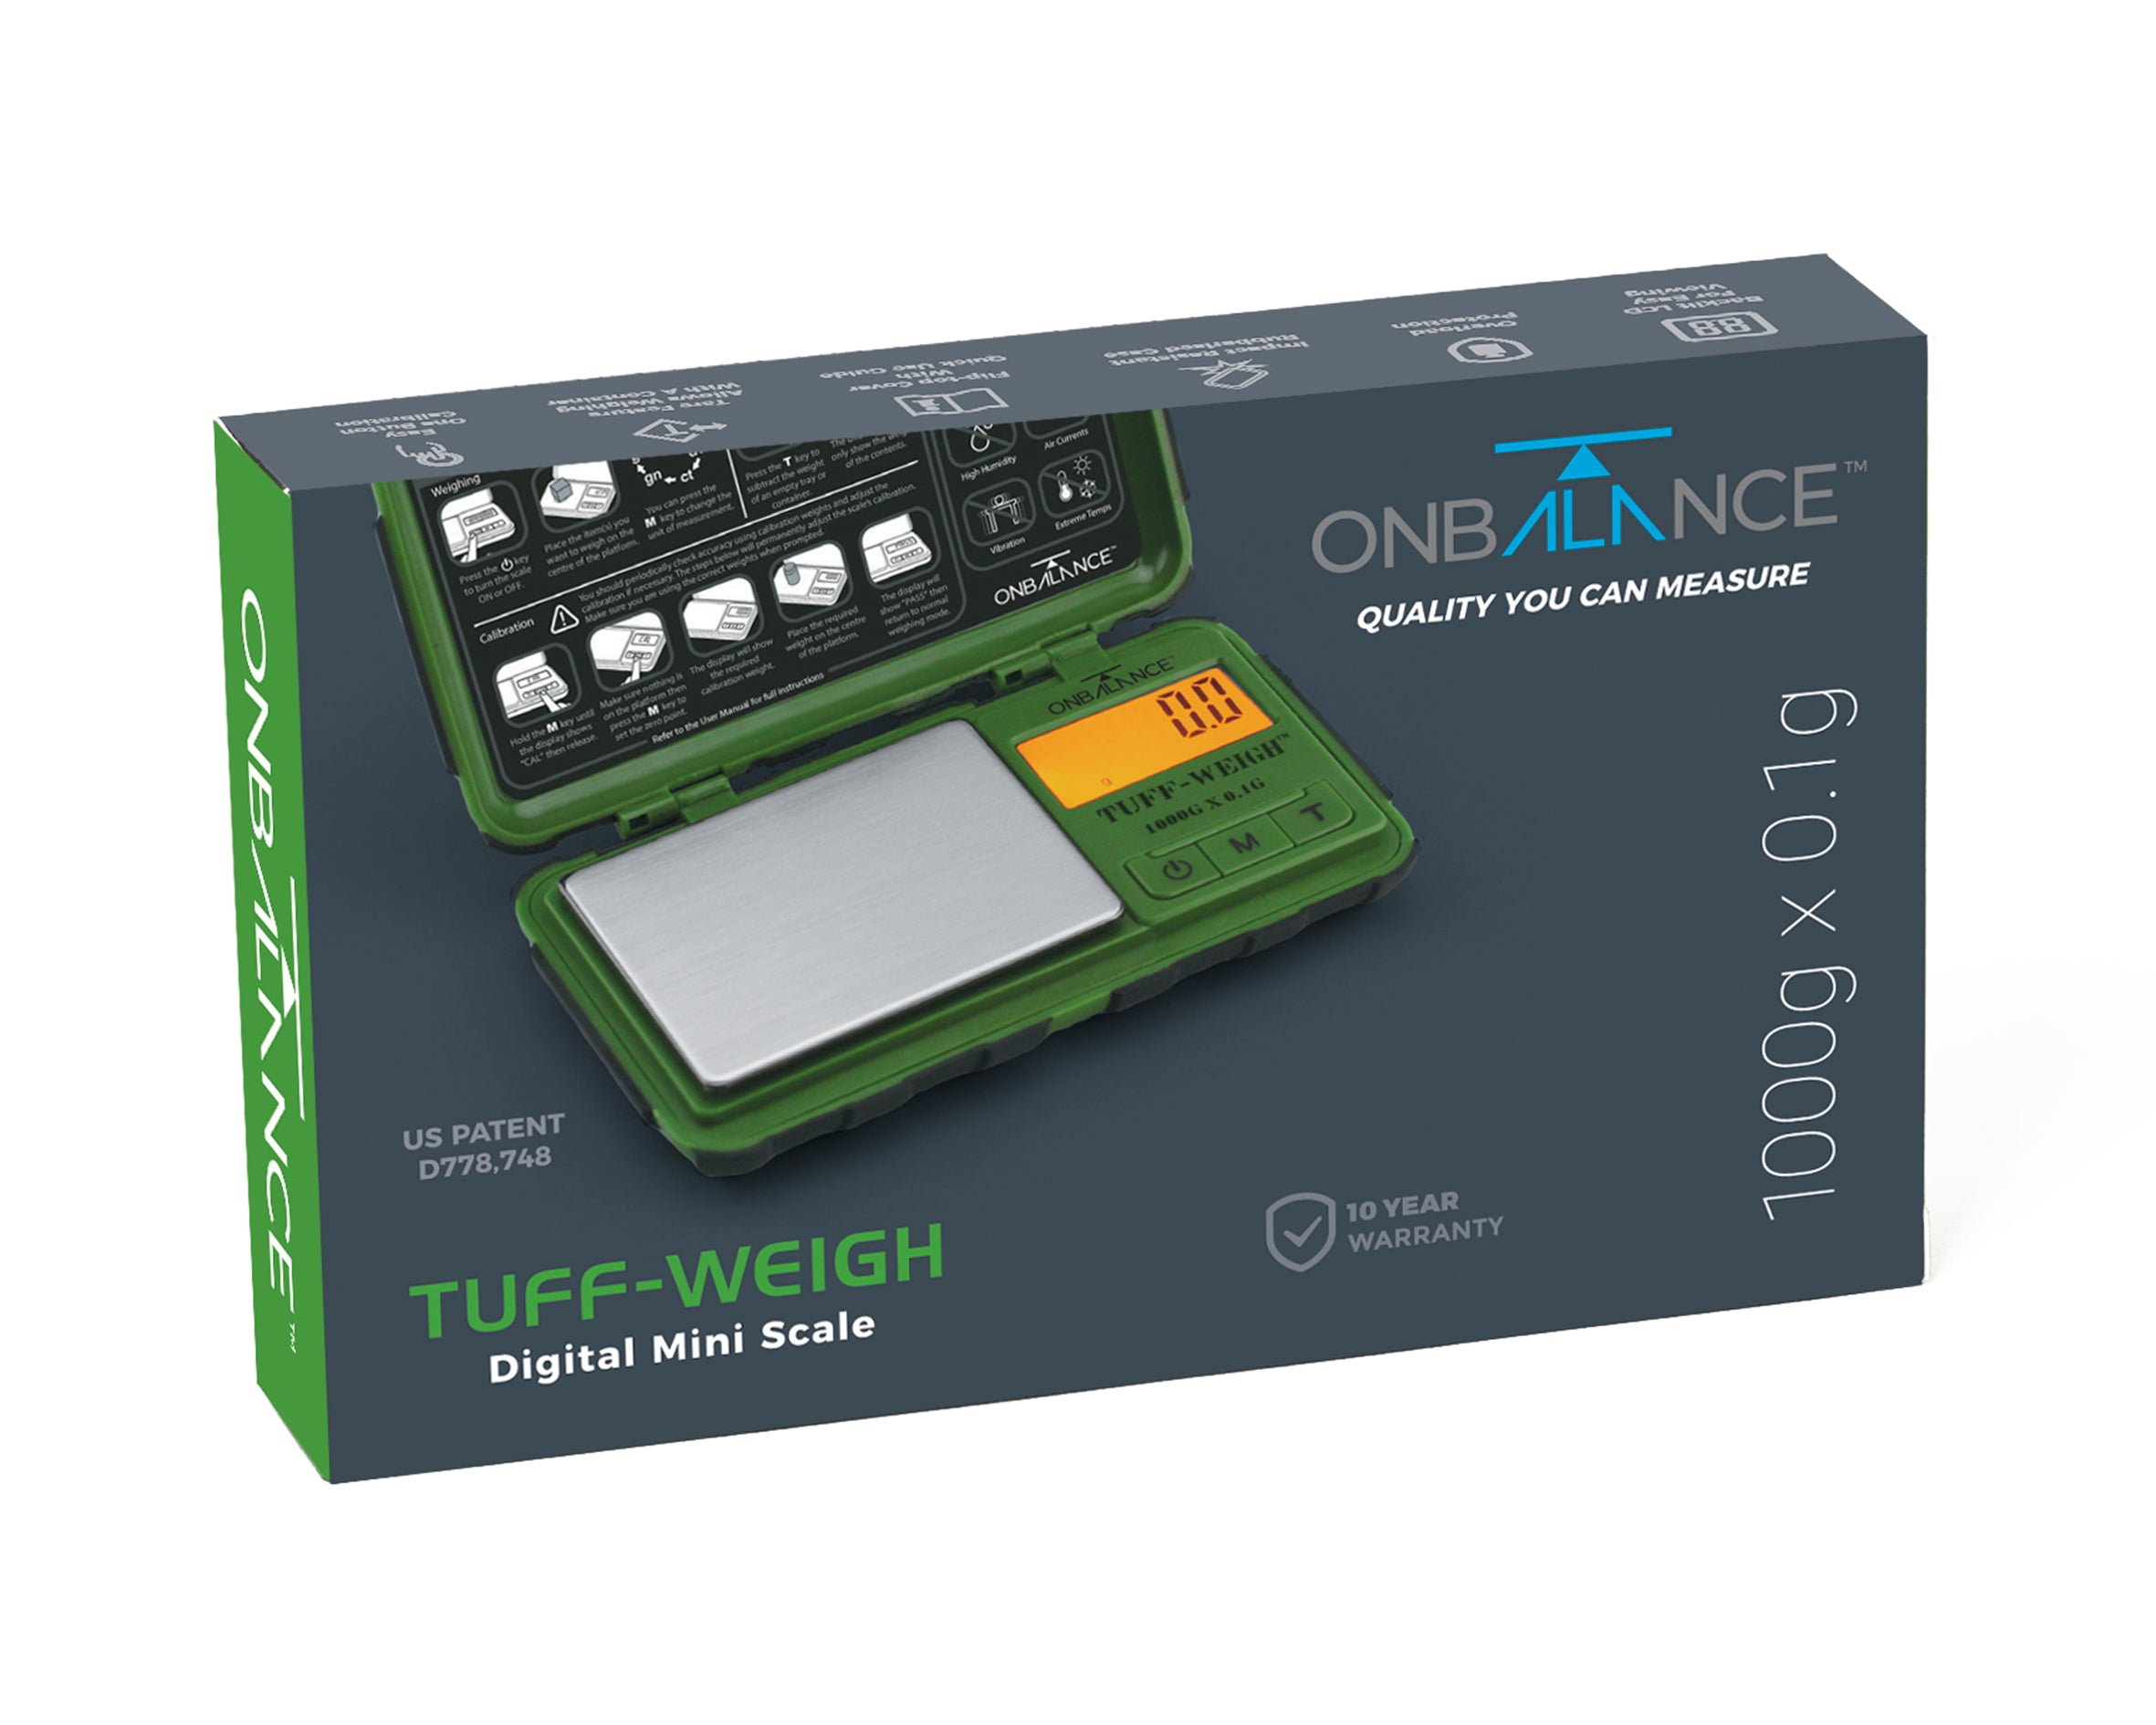 TUF-1000 On Balance Tuff-Weigh Pocket Scale - Green 1000g x 0.1g